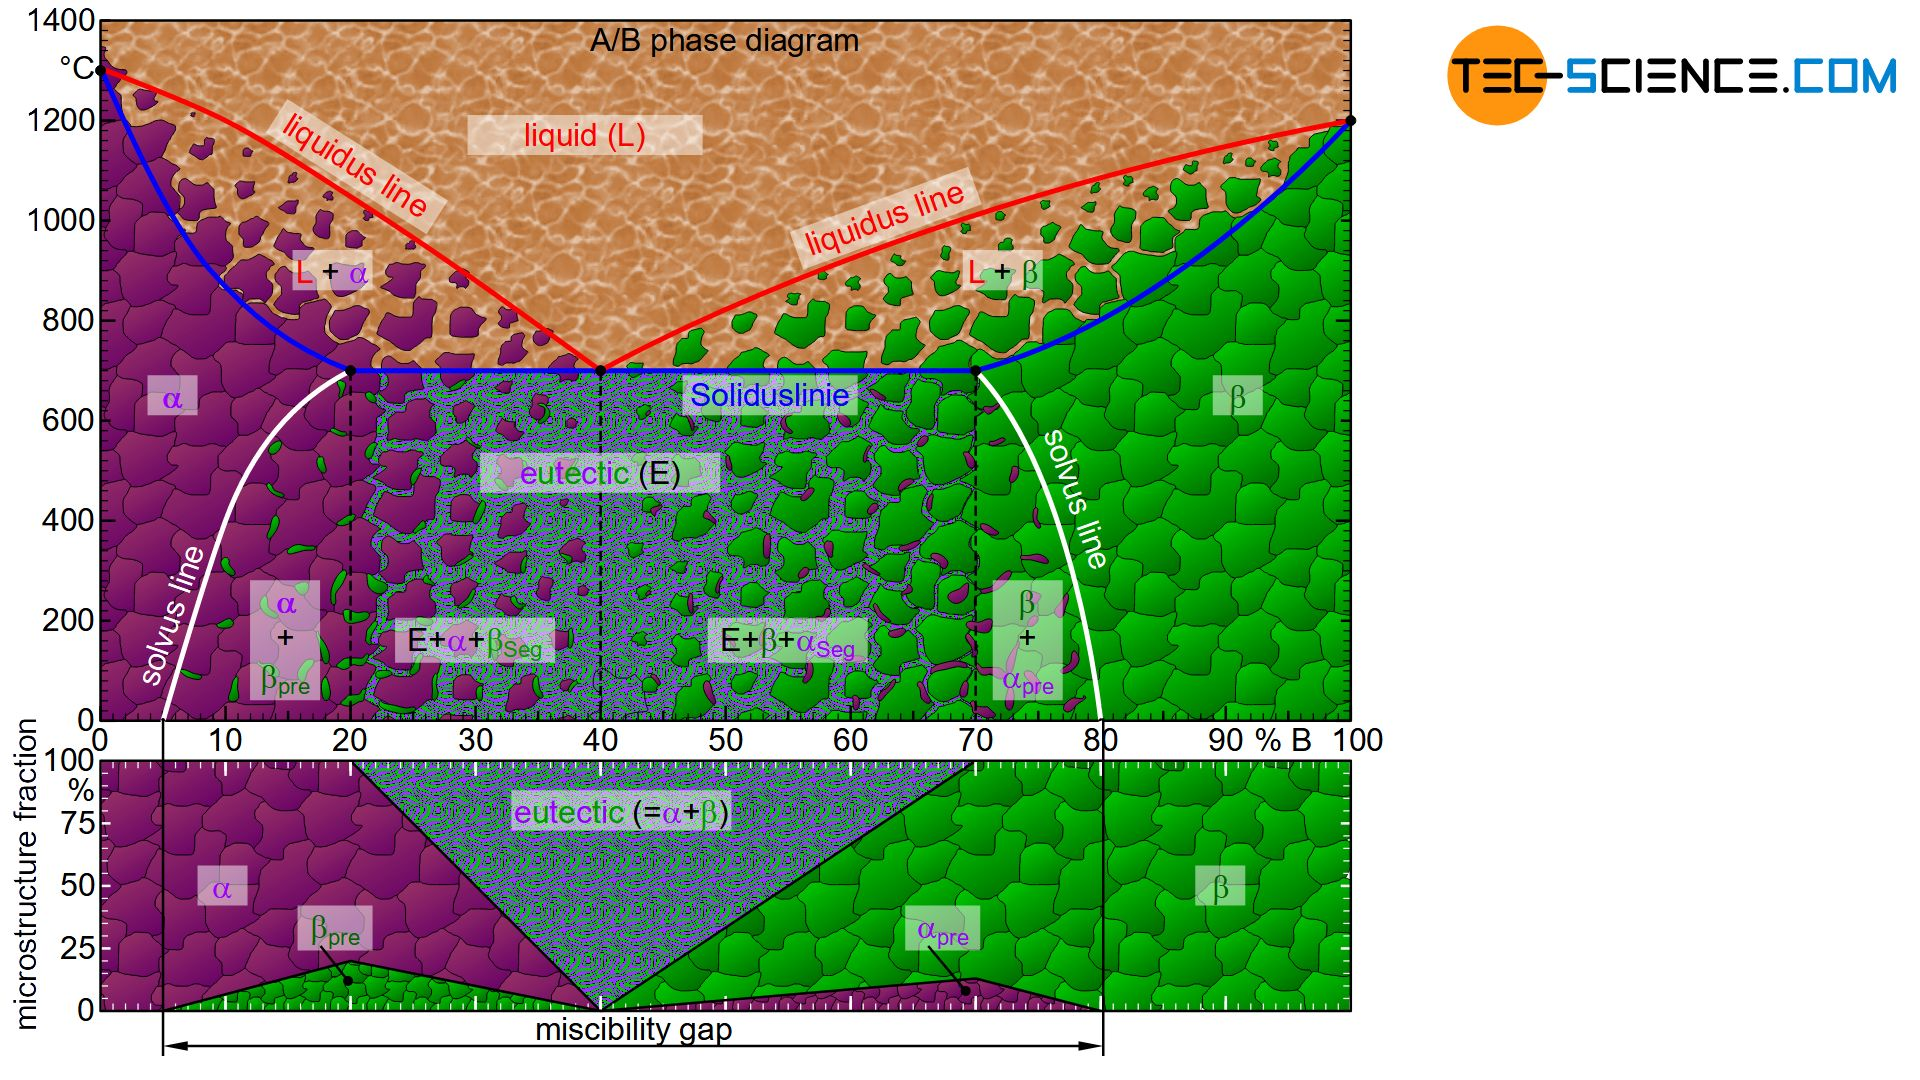 Phase diagram and microstructure diagram of an alloy system with limited solubility of the components